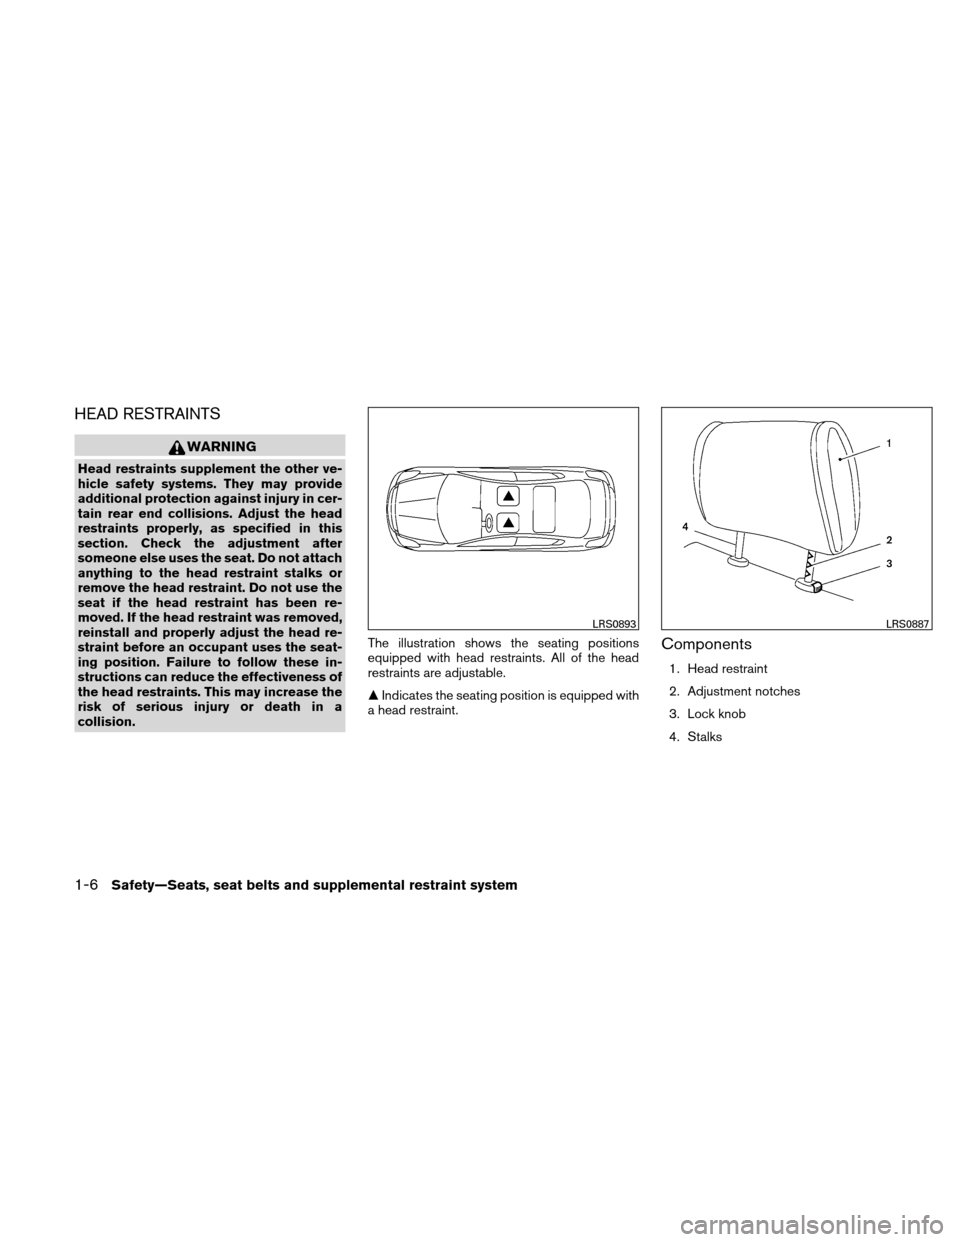 NISSAN VERSA HATCHBACK 2010 1.G Owners Manual, Page 25